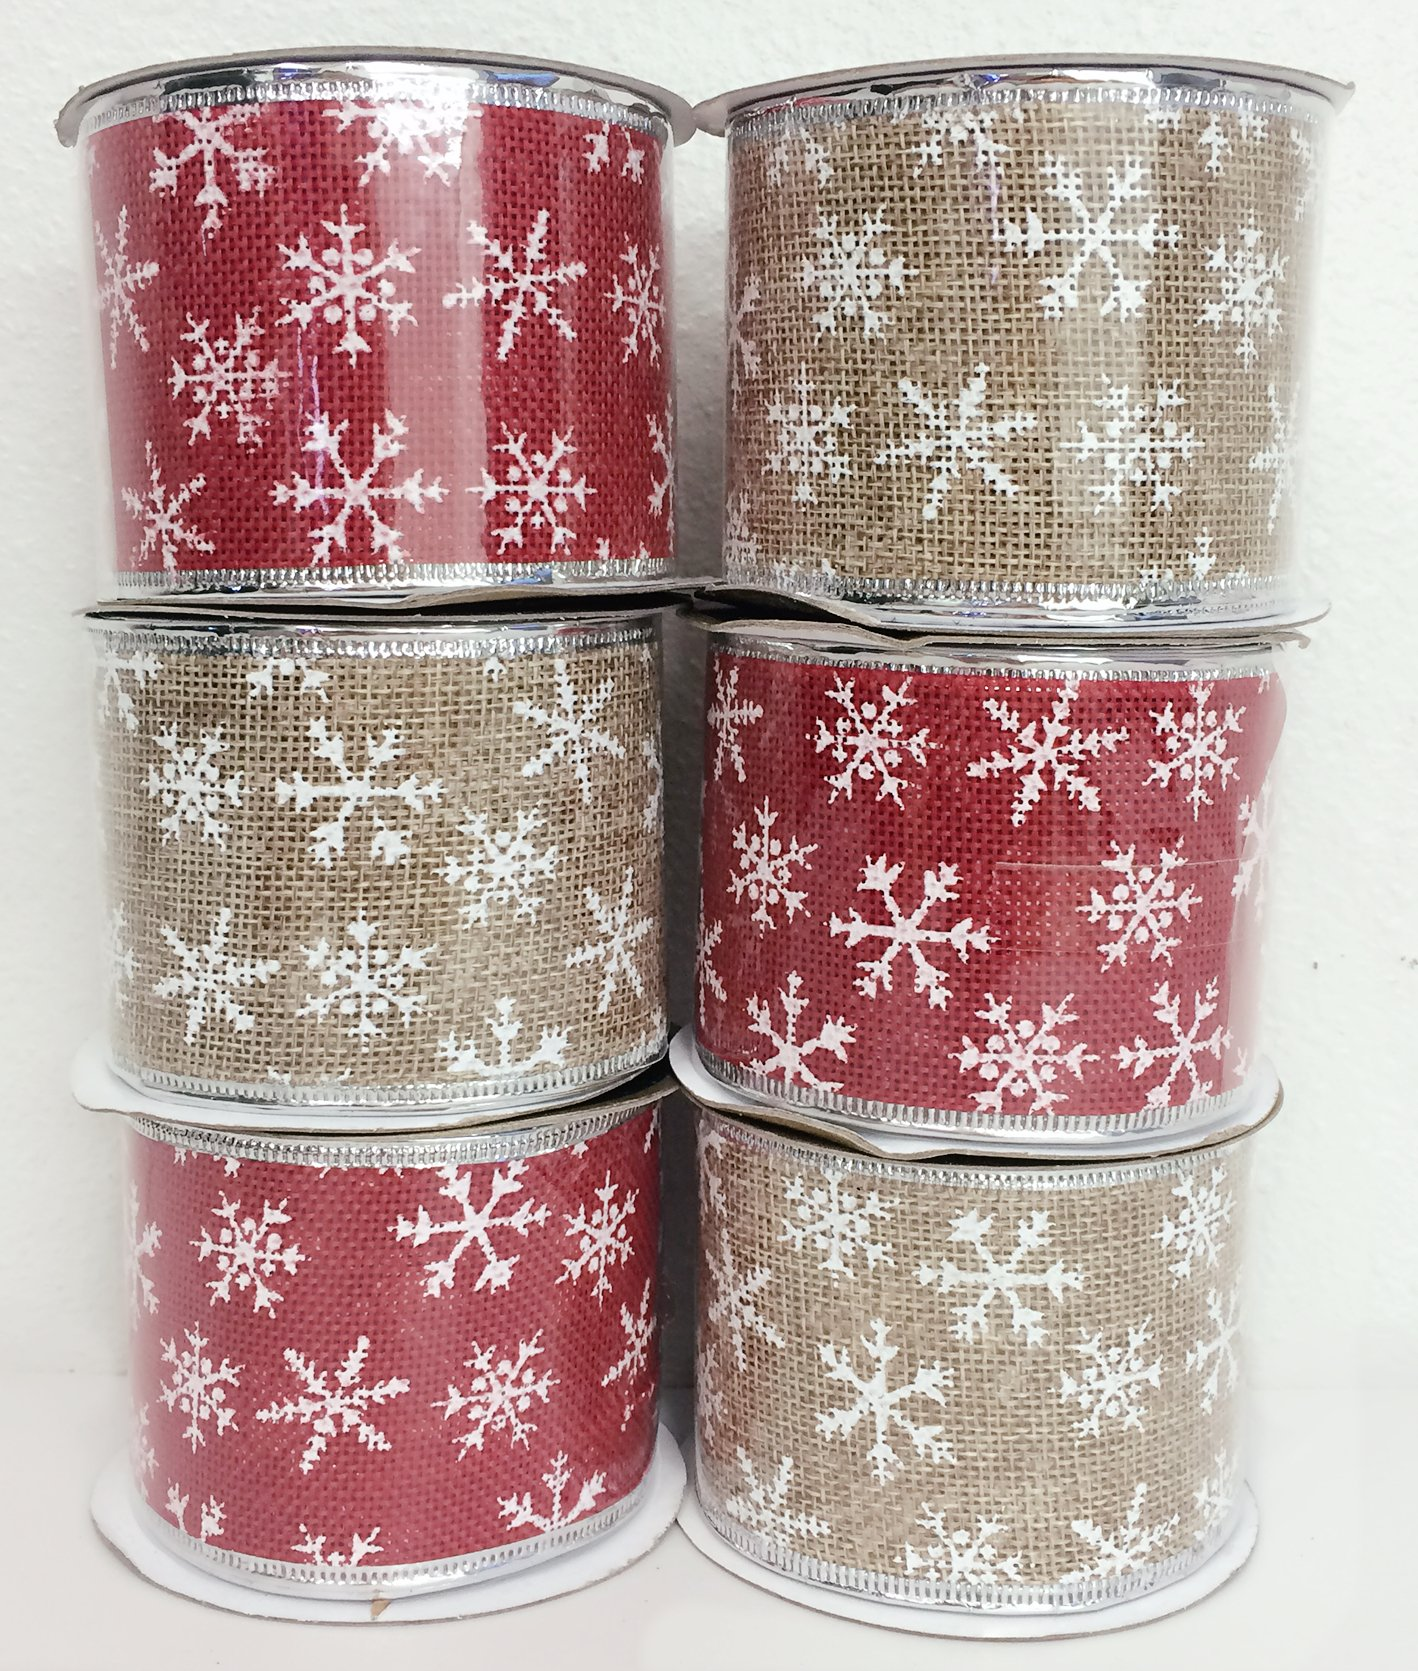 4 Rolls Assorted Patterns Classic Christmas Decorations Ribbons (2.5''W x 9FT Each) - Red/Khaki by Christmas Elegance